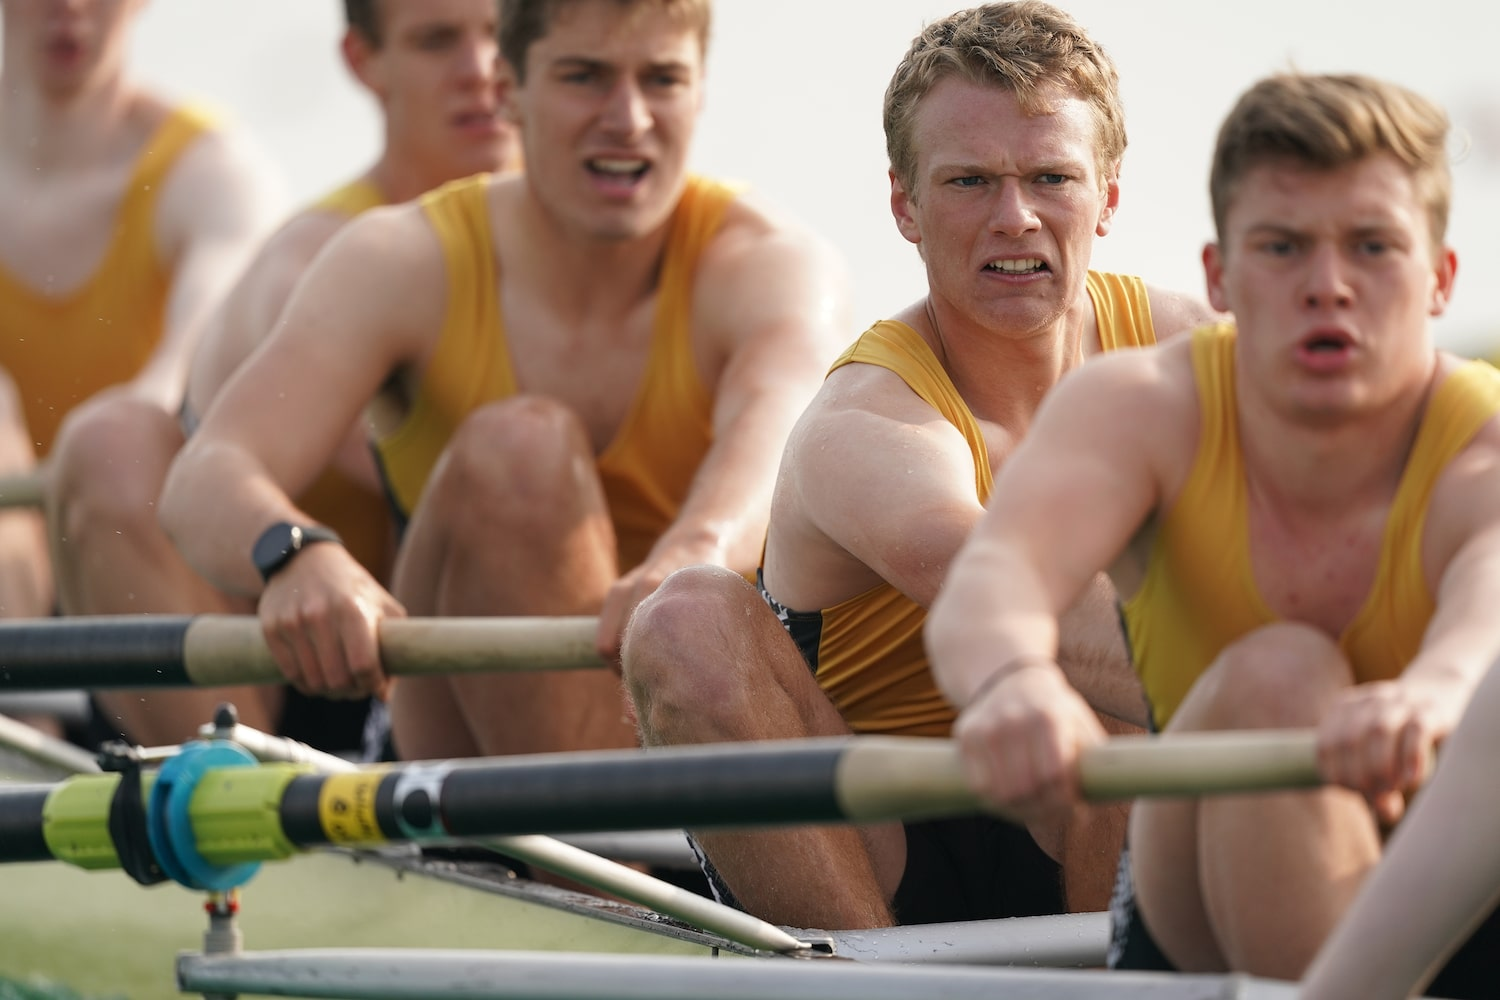 men-on-boat-rowing-alpha-9